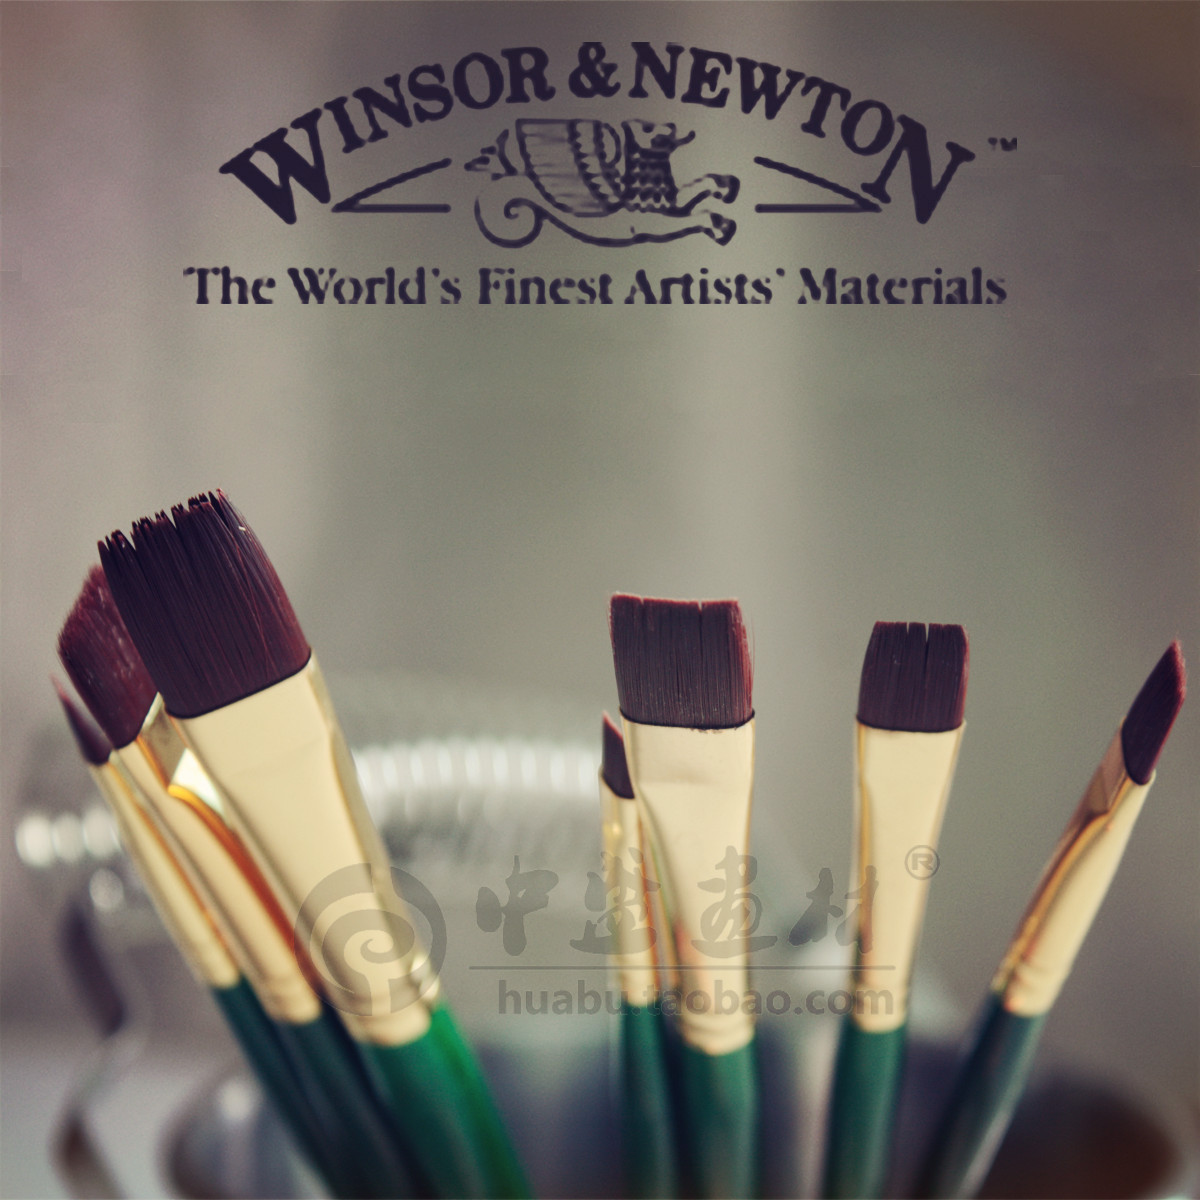 Winsor & Newton Extra fine Acrylic,oil color paint bursh.Art paint brush set.A short flat.wooden handle,High grade.Good quality. michael newton hinge saatus